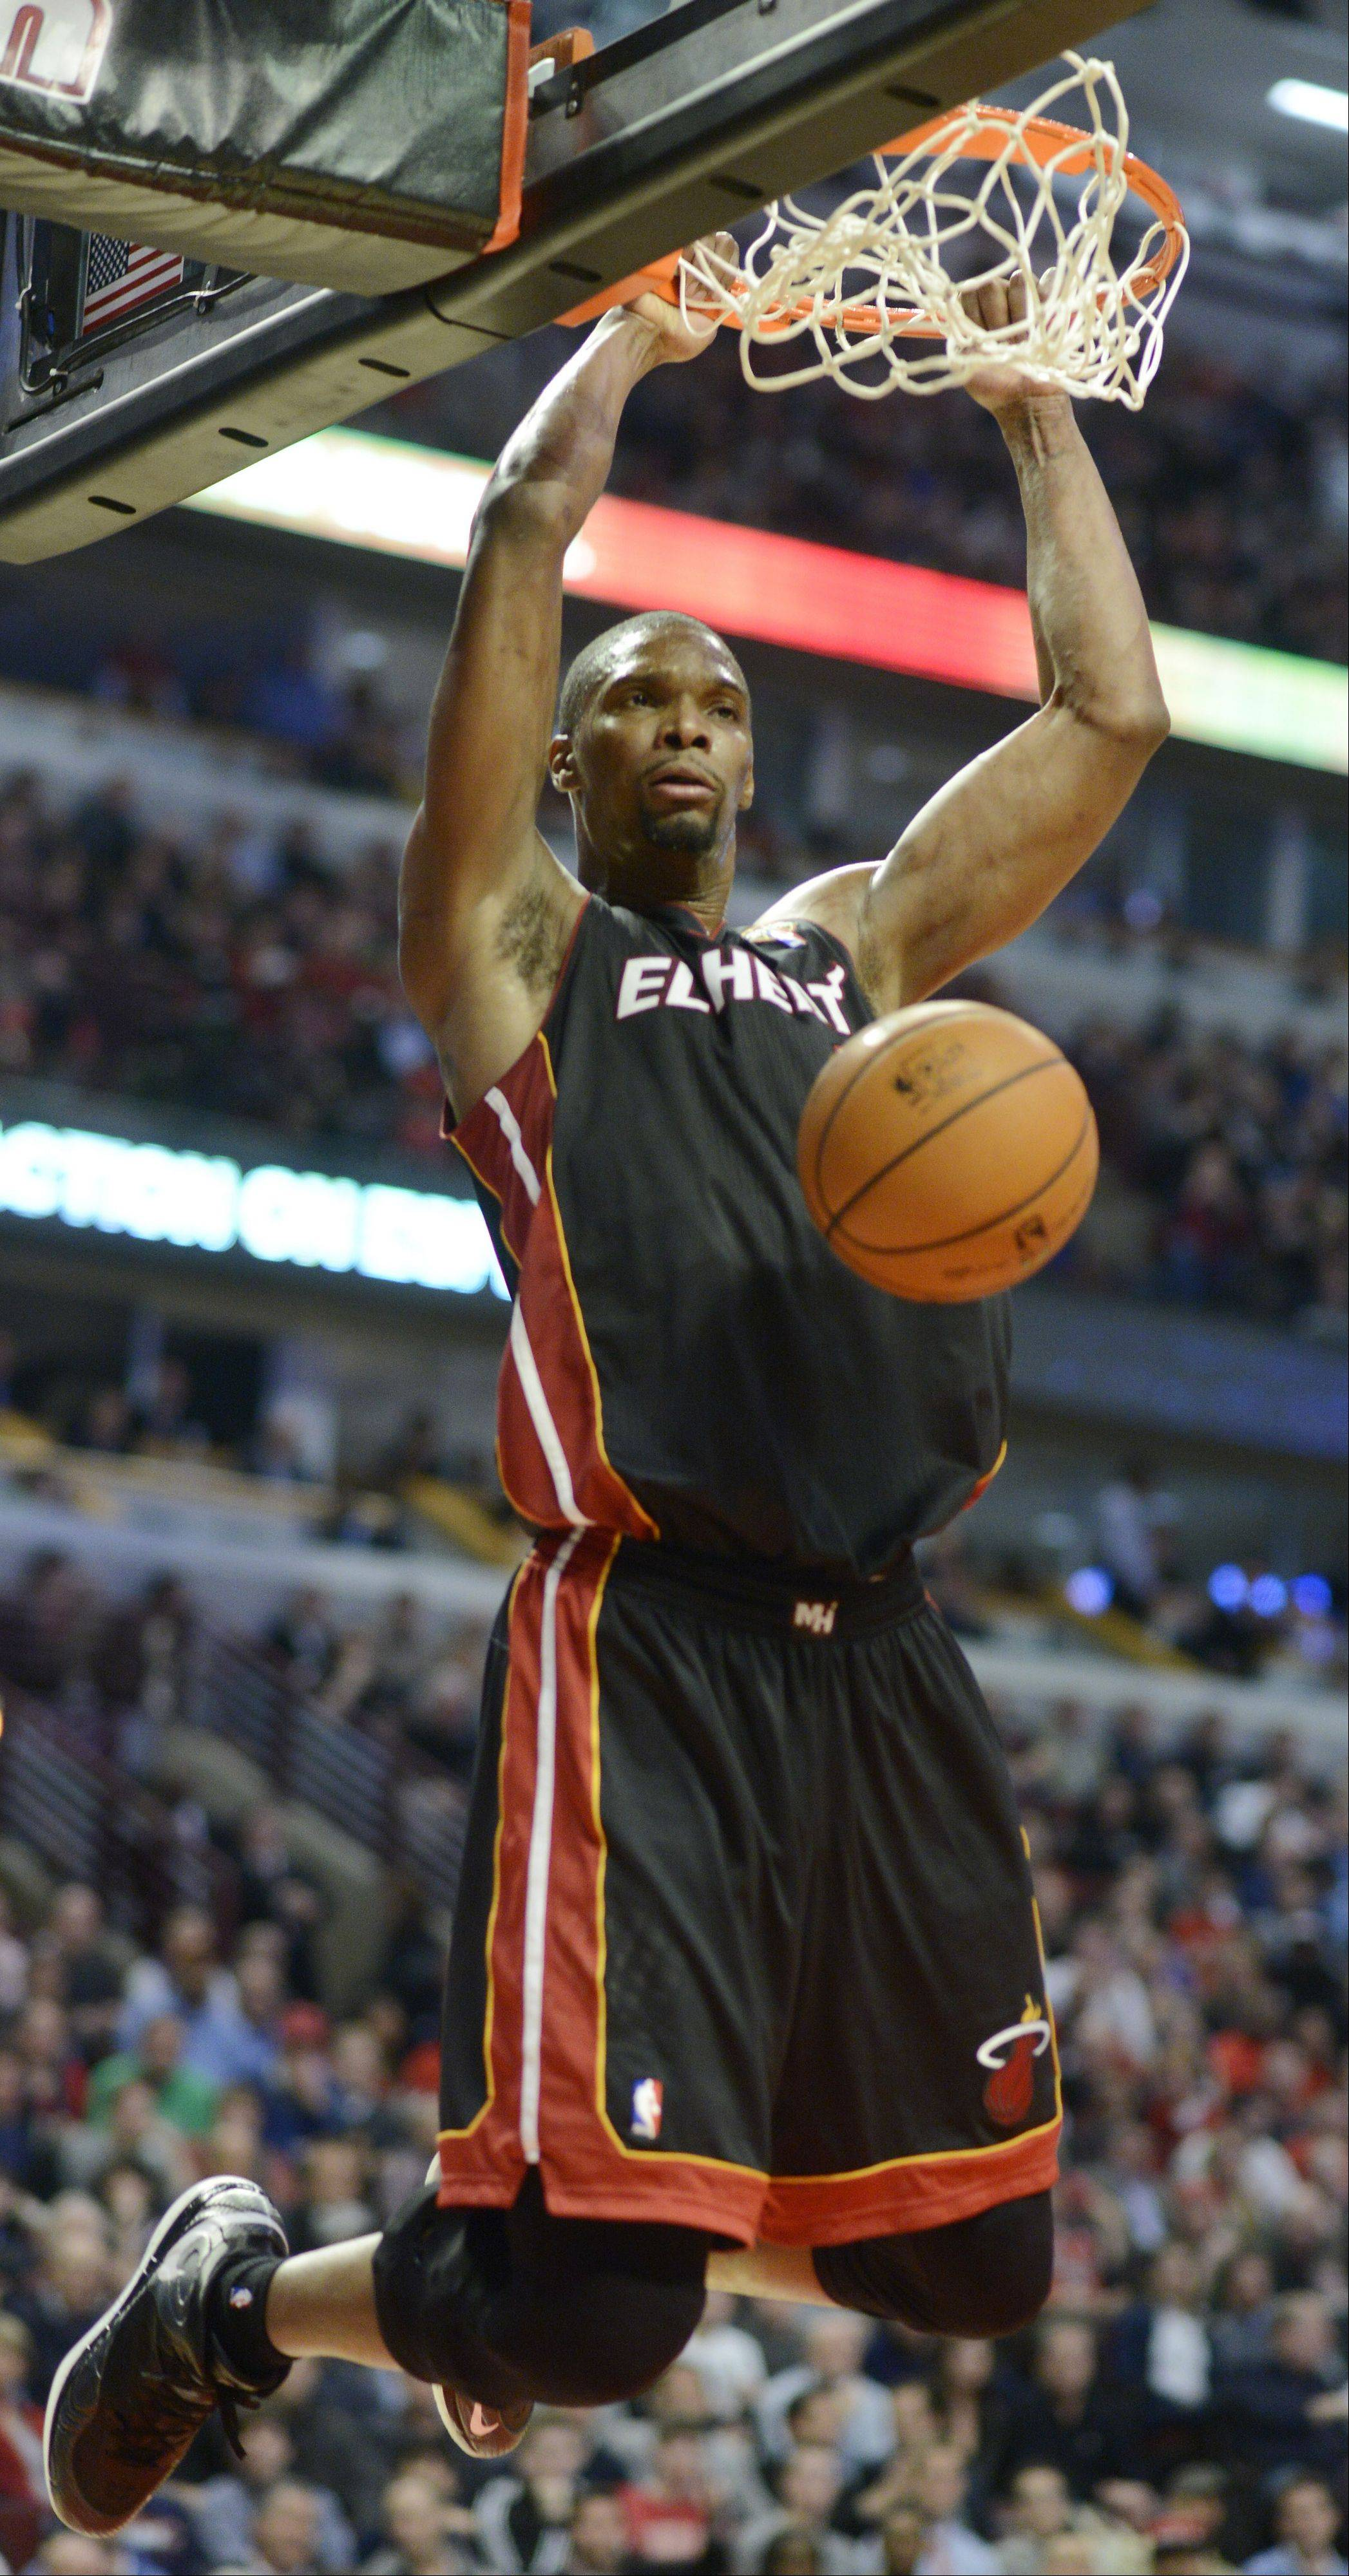 Chris Bosh of the Heat dunks during Wednesday's game against the Bulls.